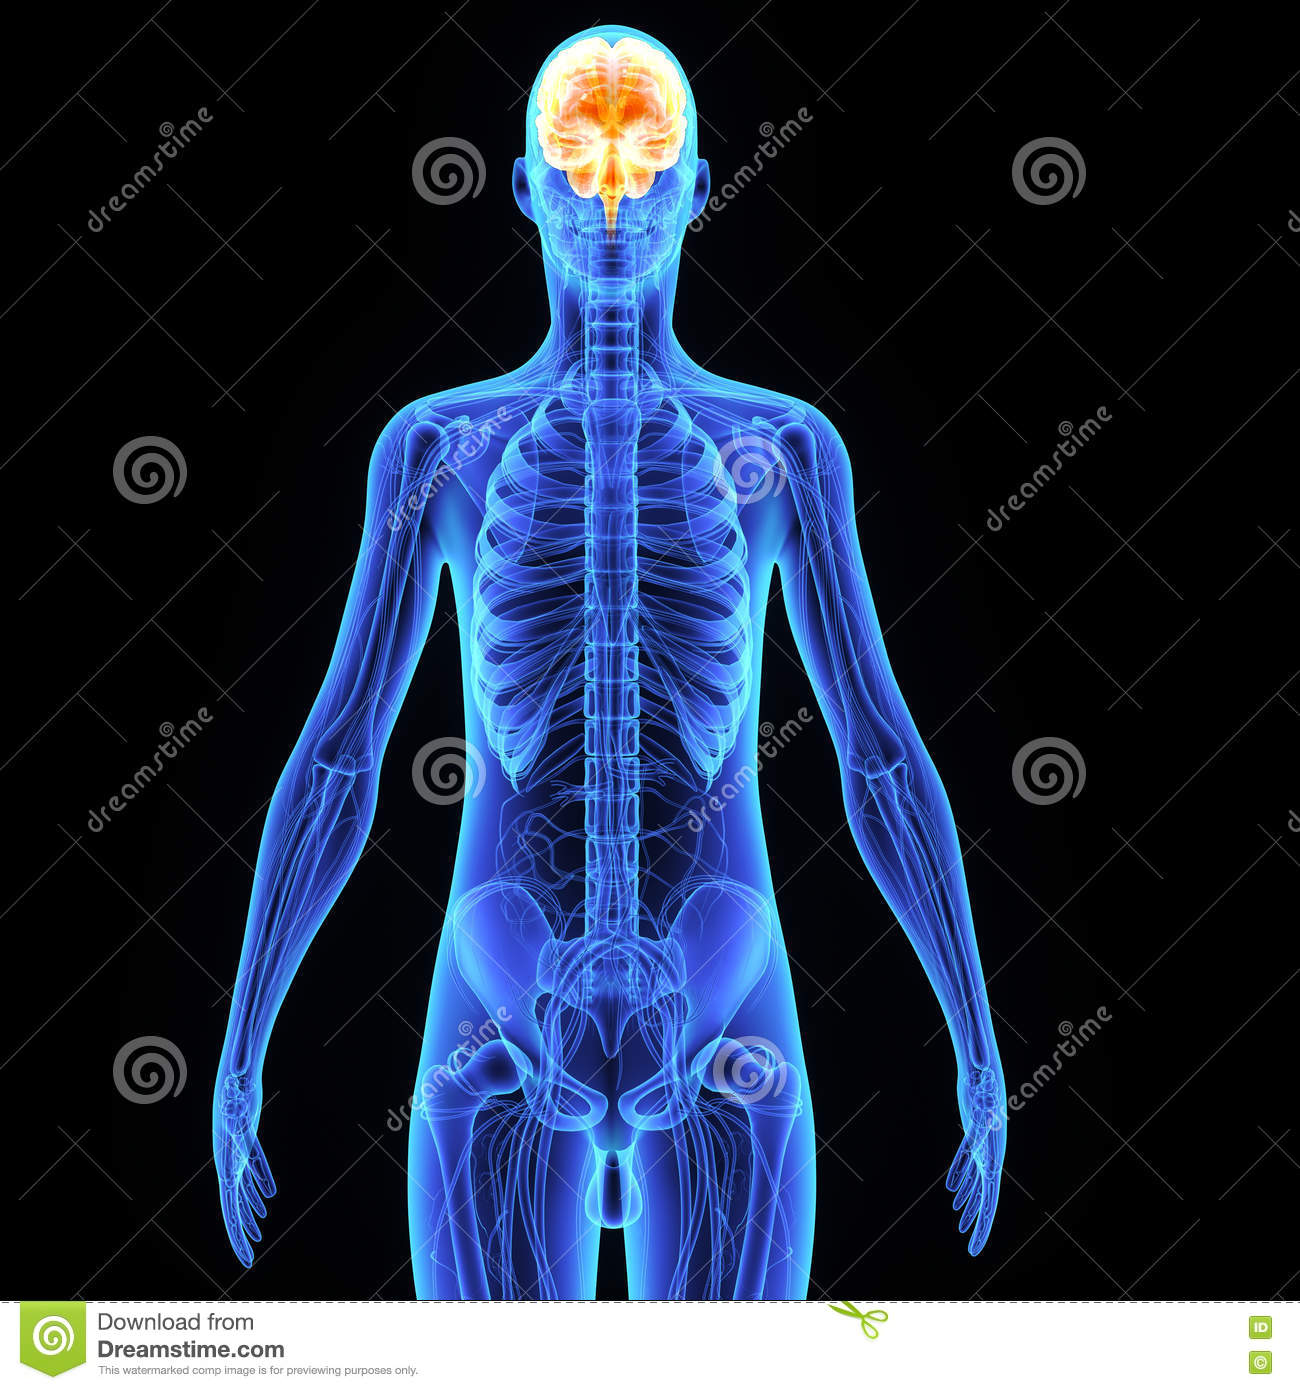 human brain stock illustration - image: 56141583, Muscles